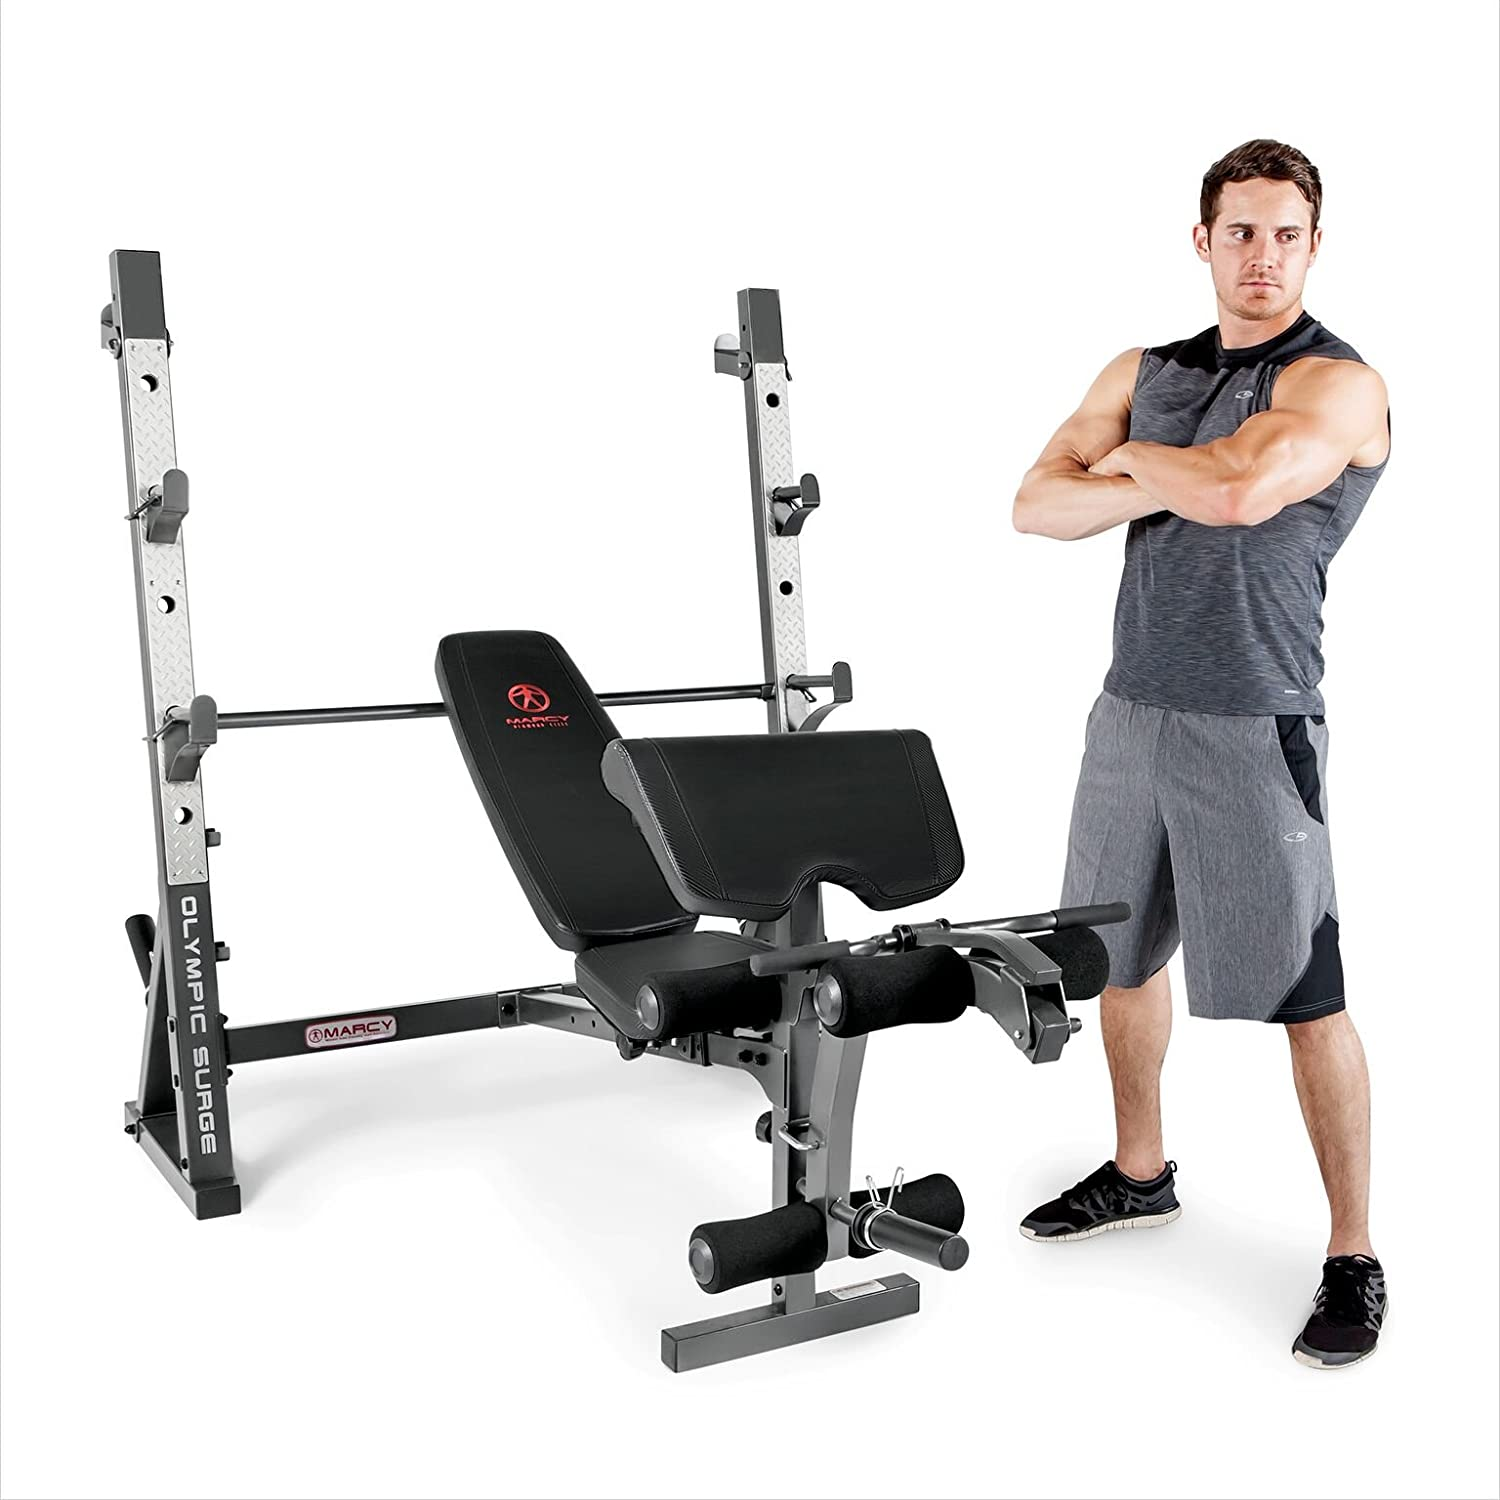 Amazon com : Marcy Olympic Weight Bench for Full-Body